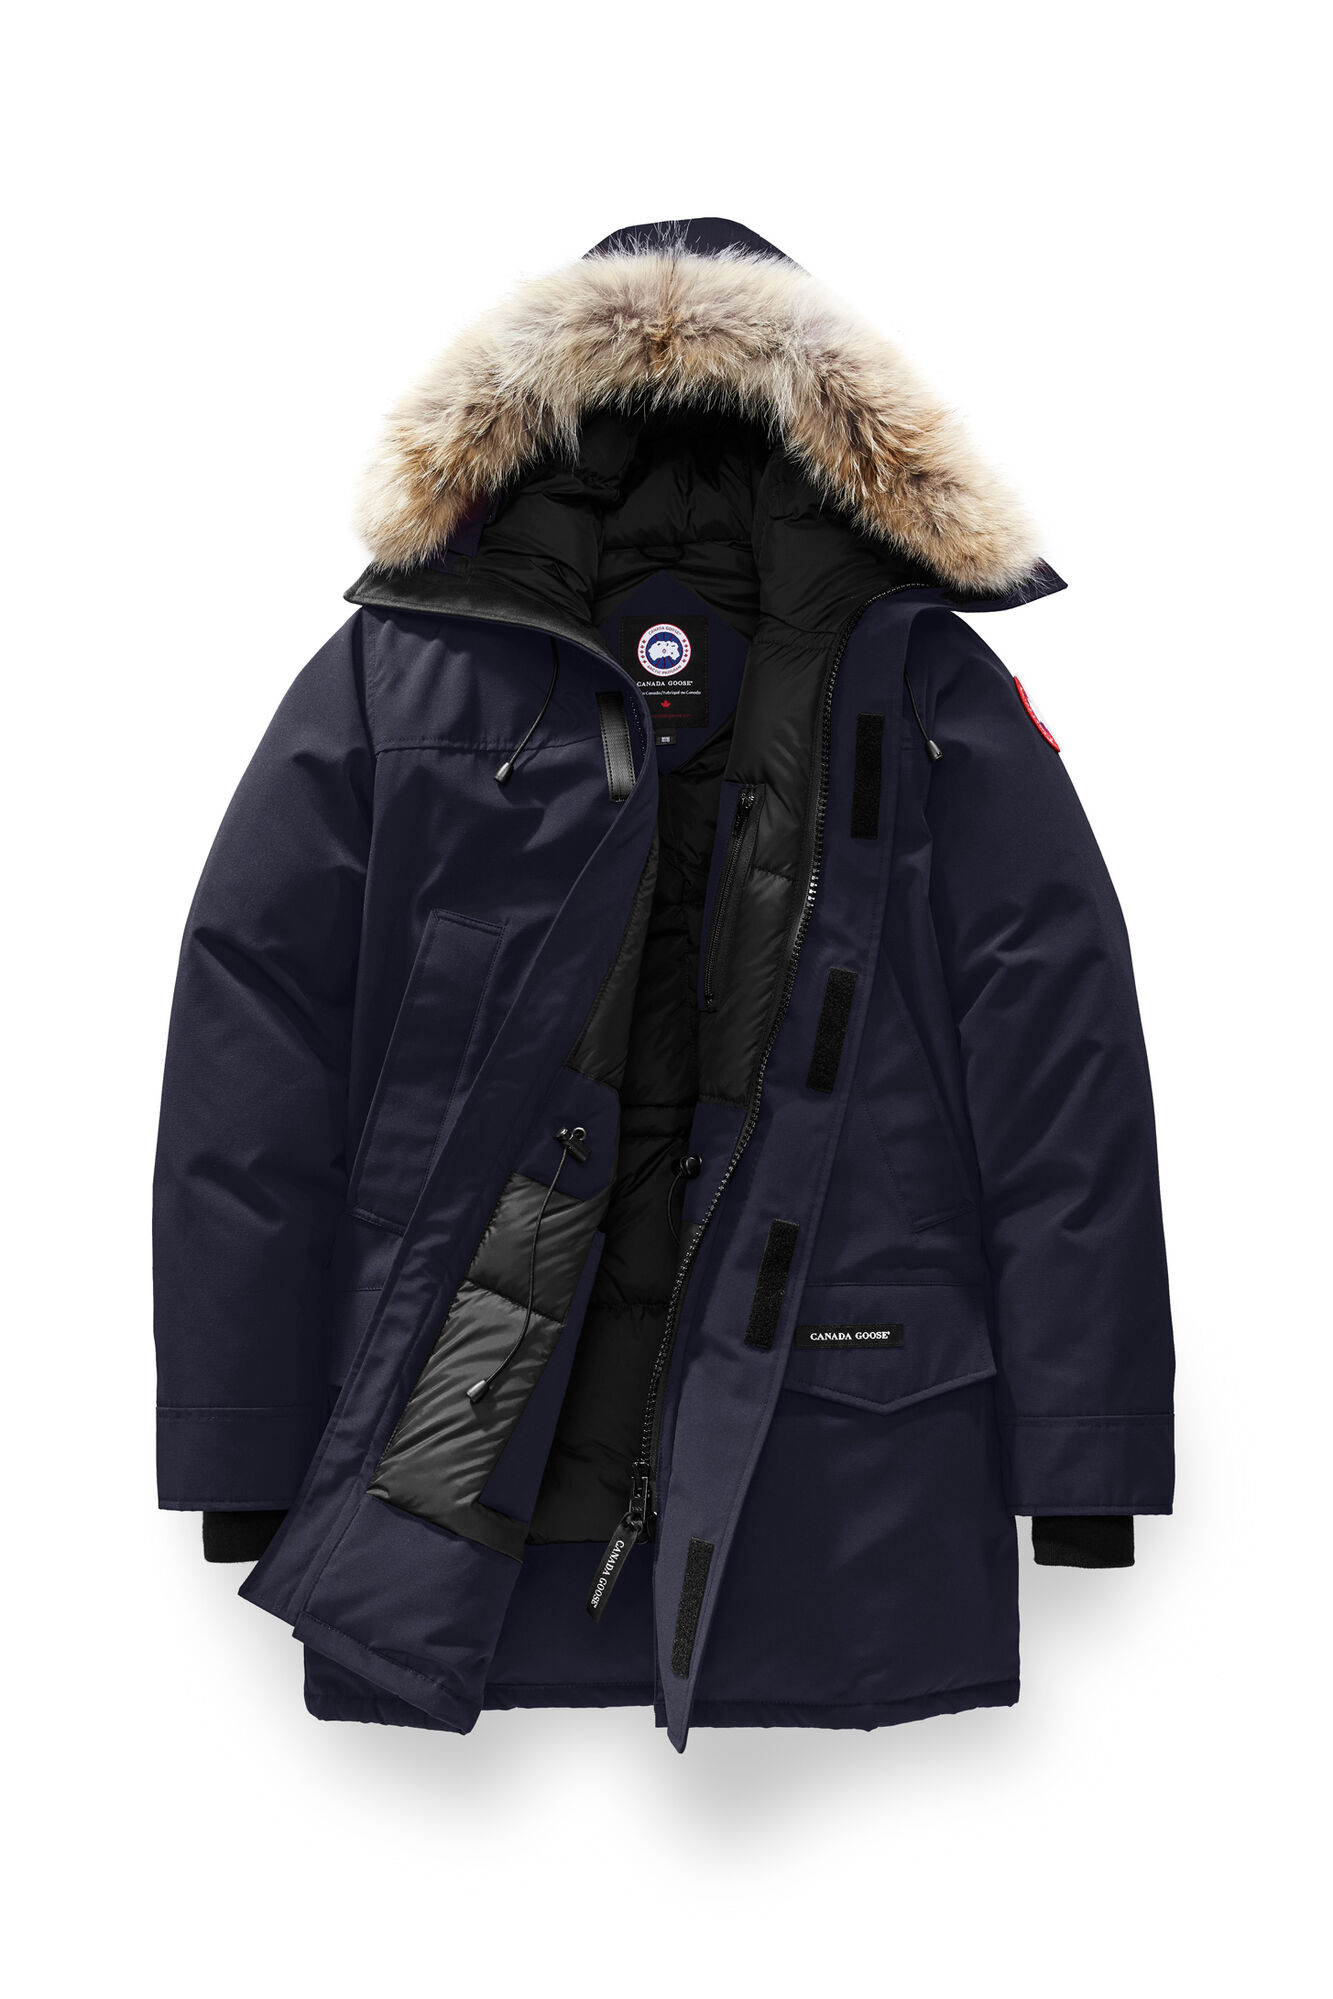 Canada Goose Langford Parka Amsterdam